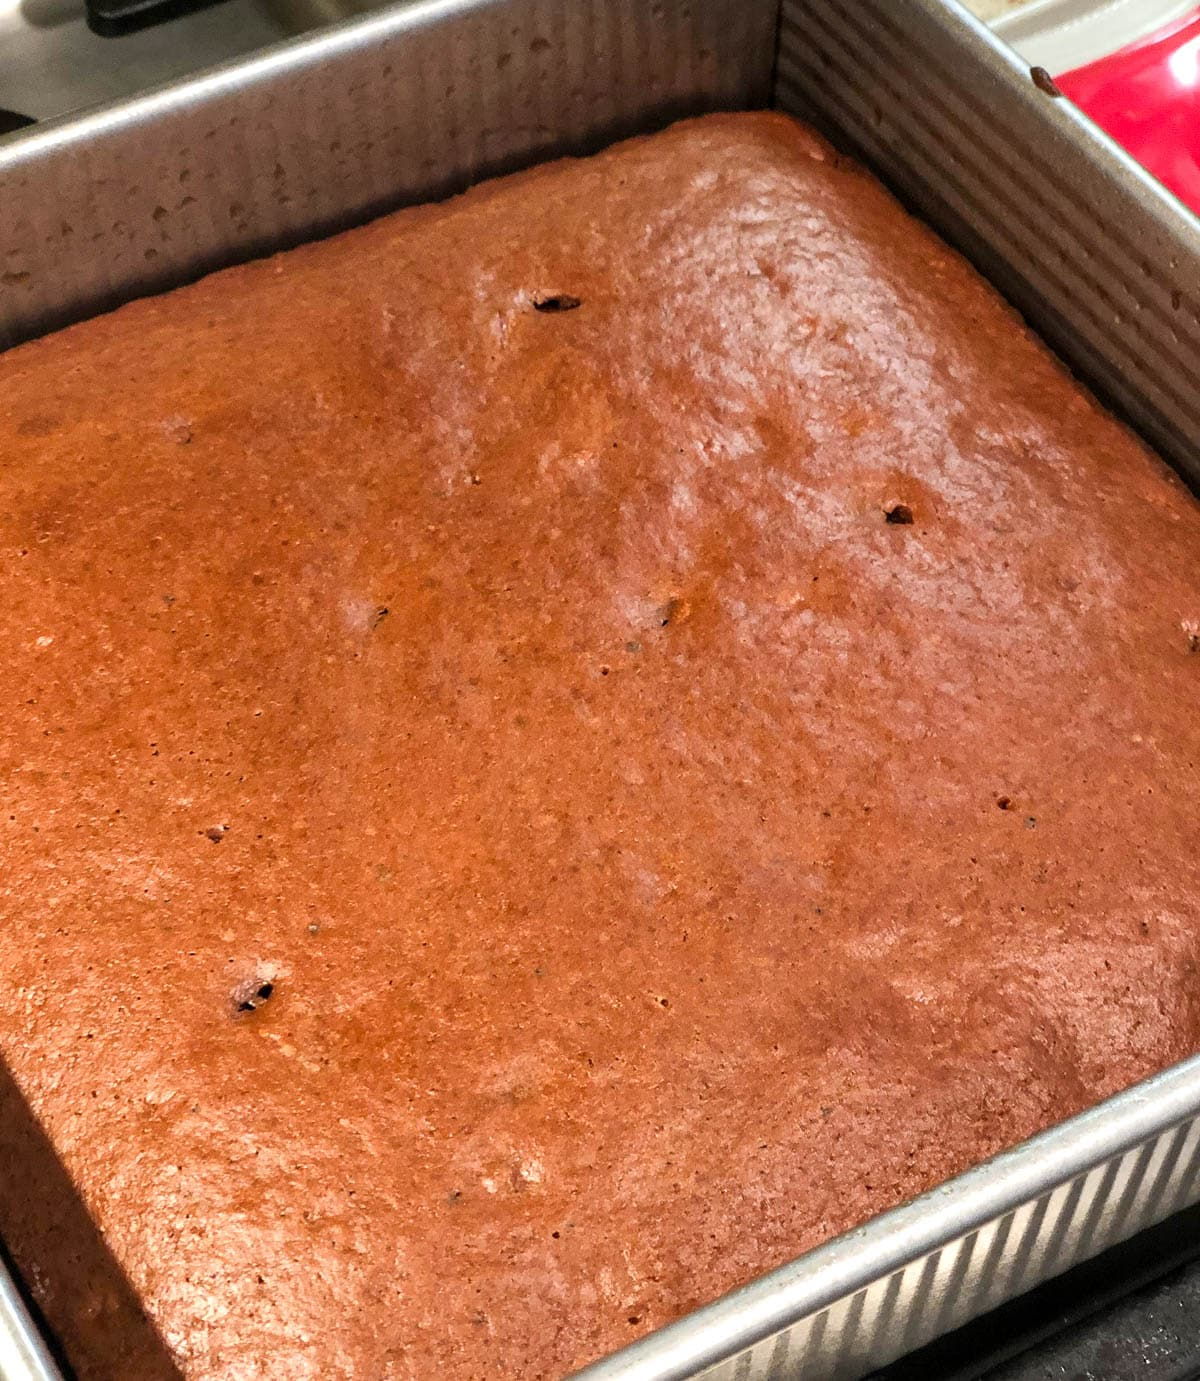 double chocolate banana cake fresh out of the oven